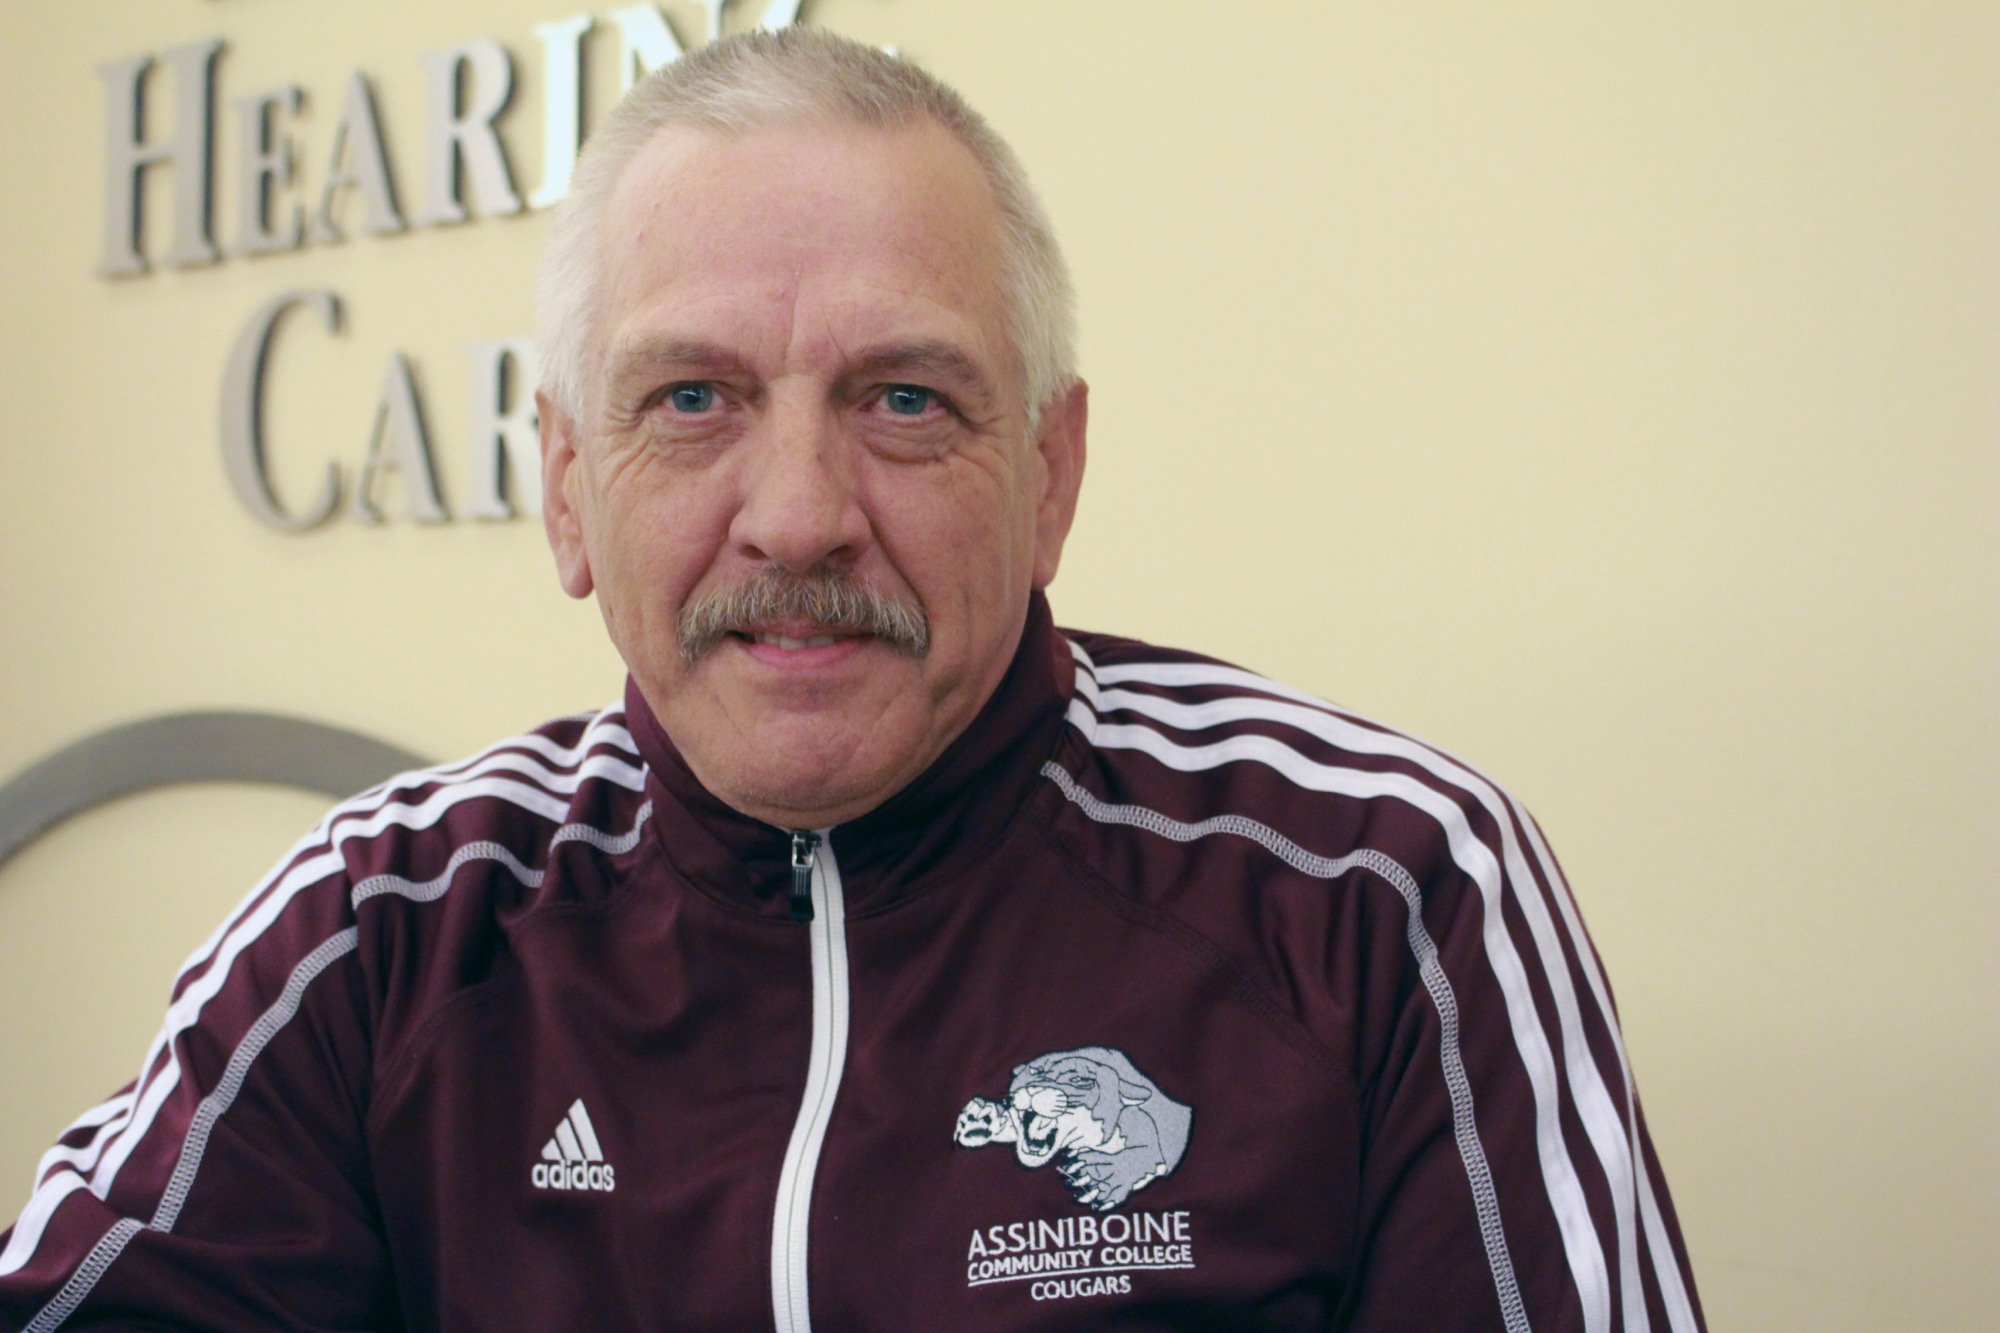 Bo Kampmann hopes to introduce futsal to Brandon's youth through the Brandon Youth Soccer Association (BYSA) by as early as November.